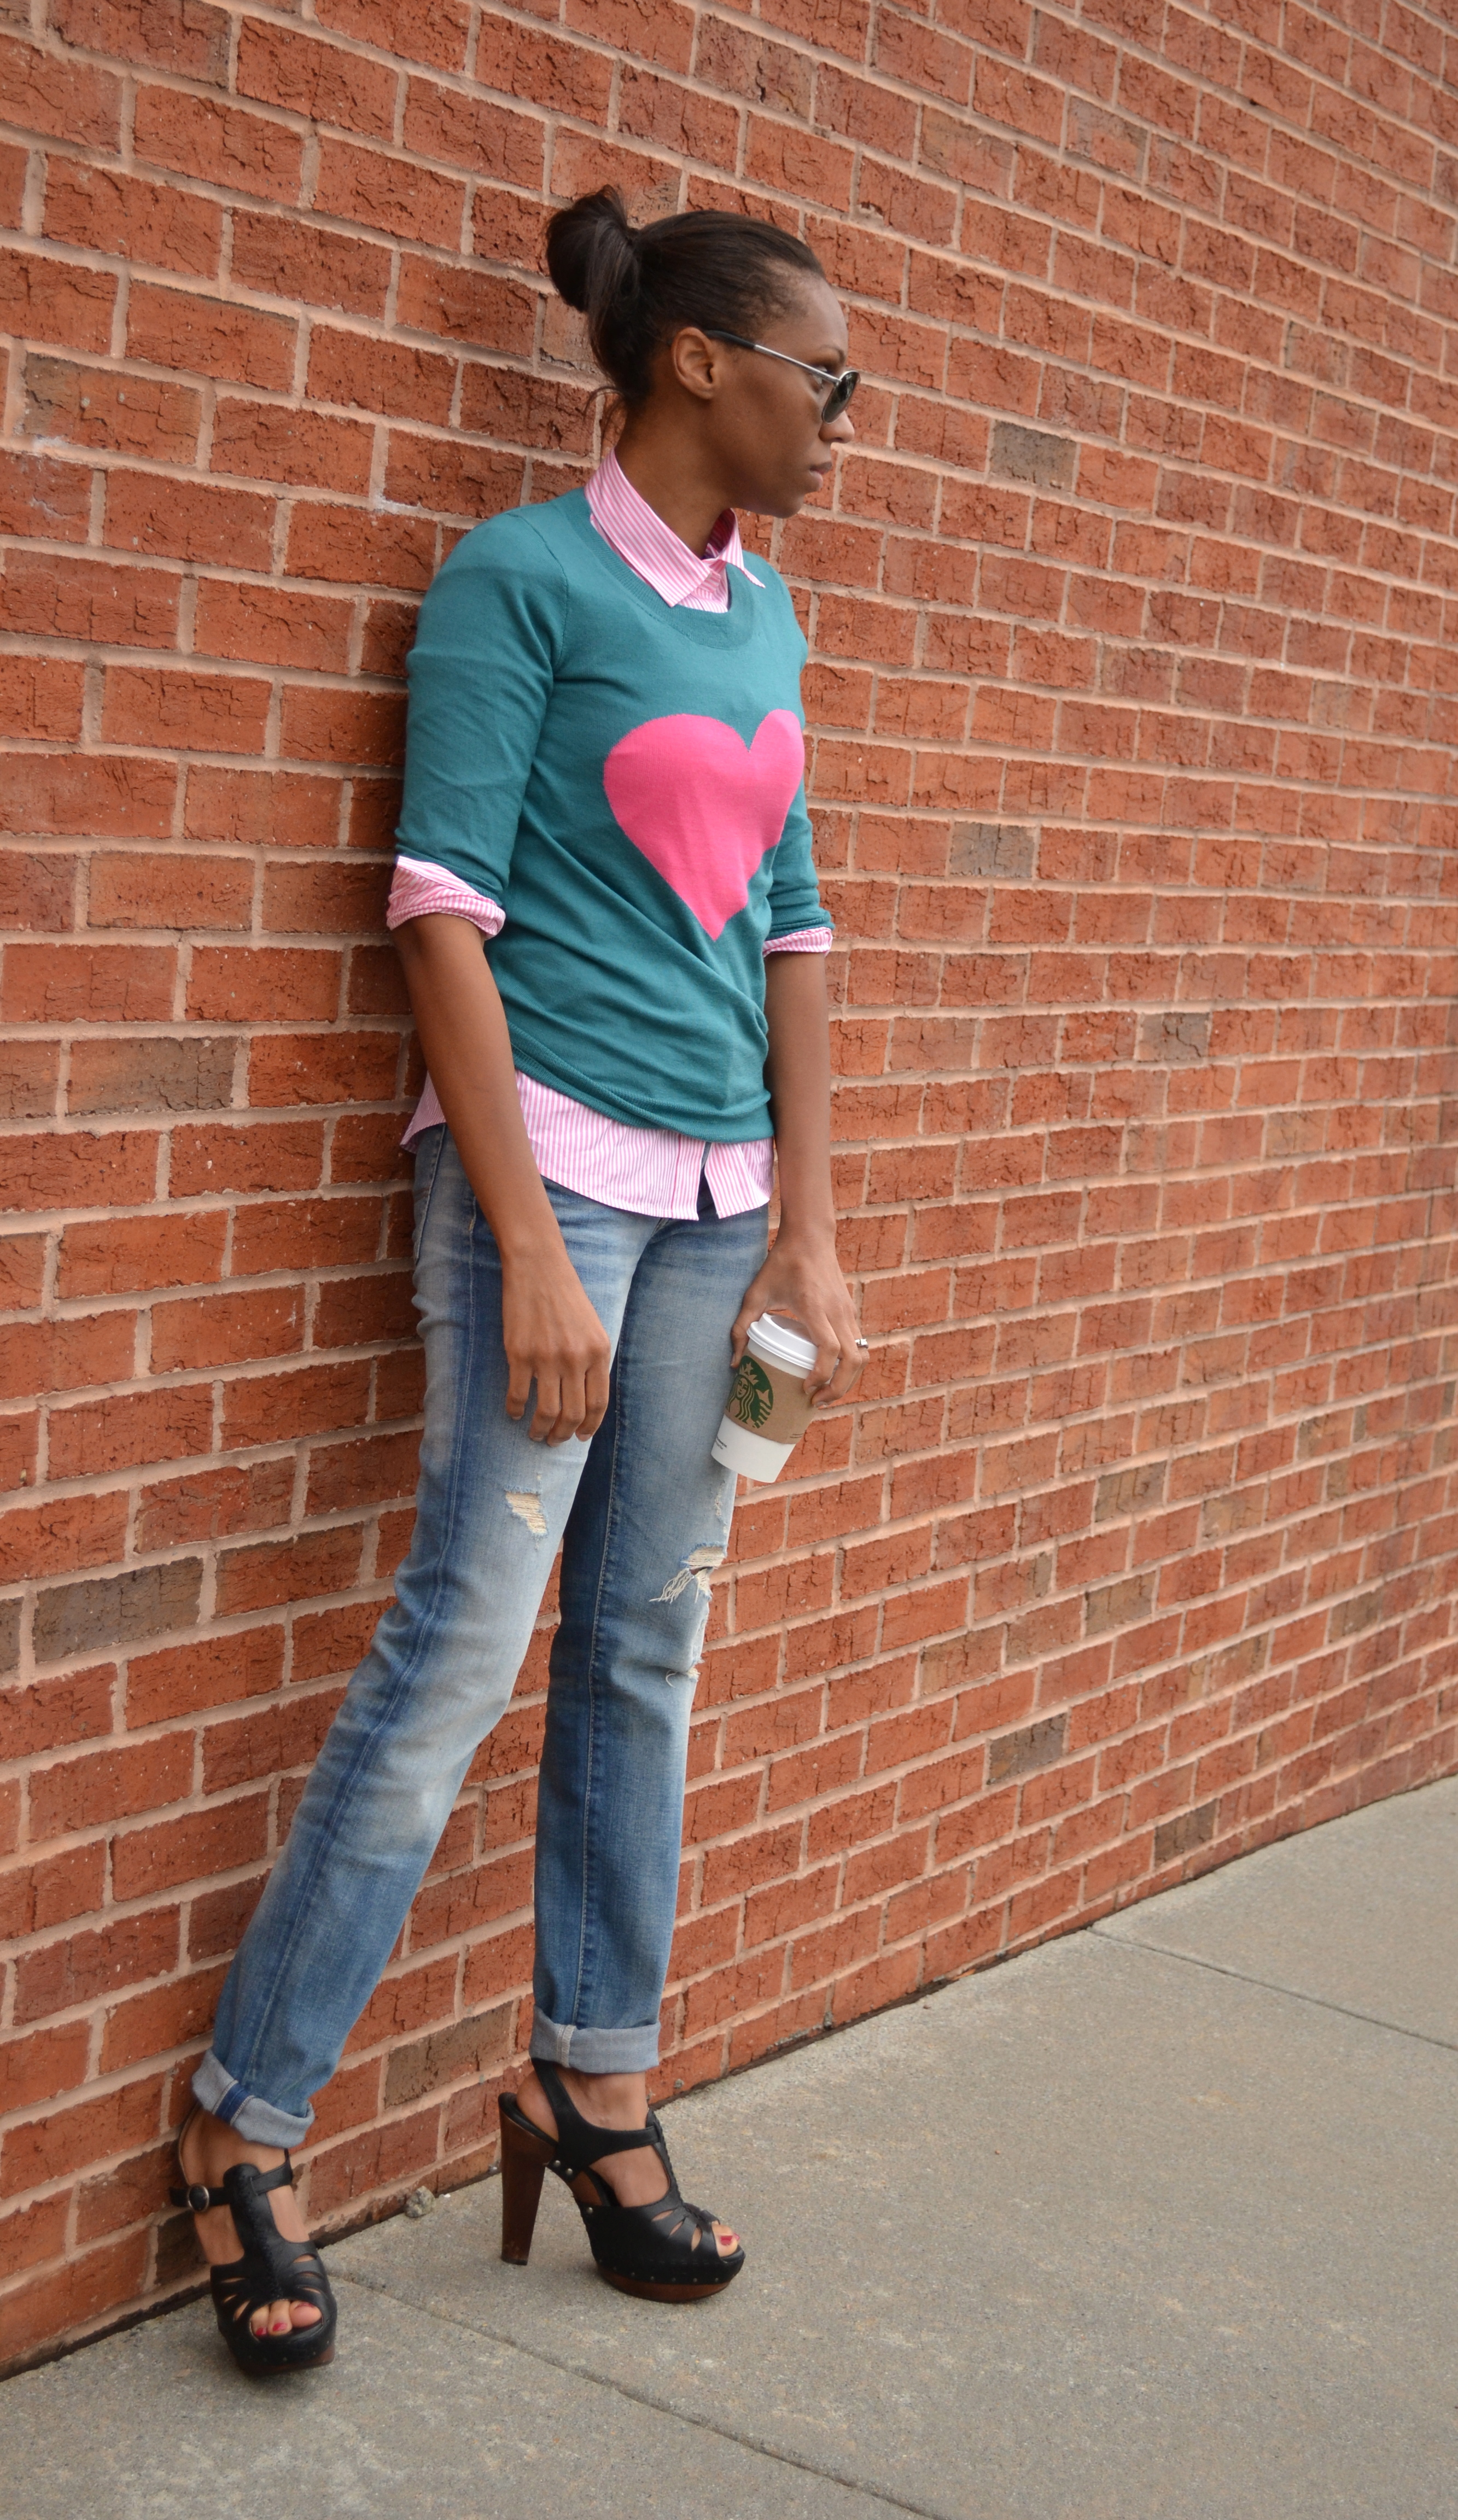 Wear to what with pink striped shirt fotos